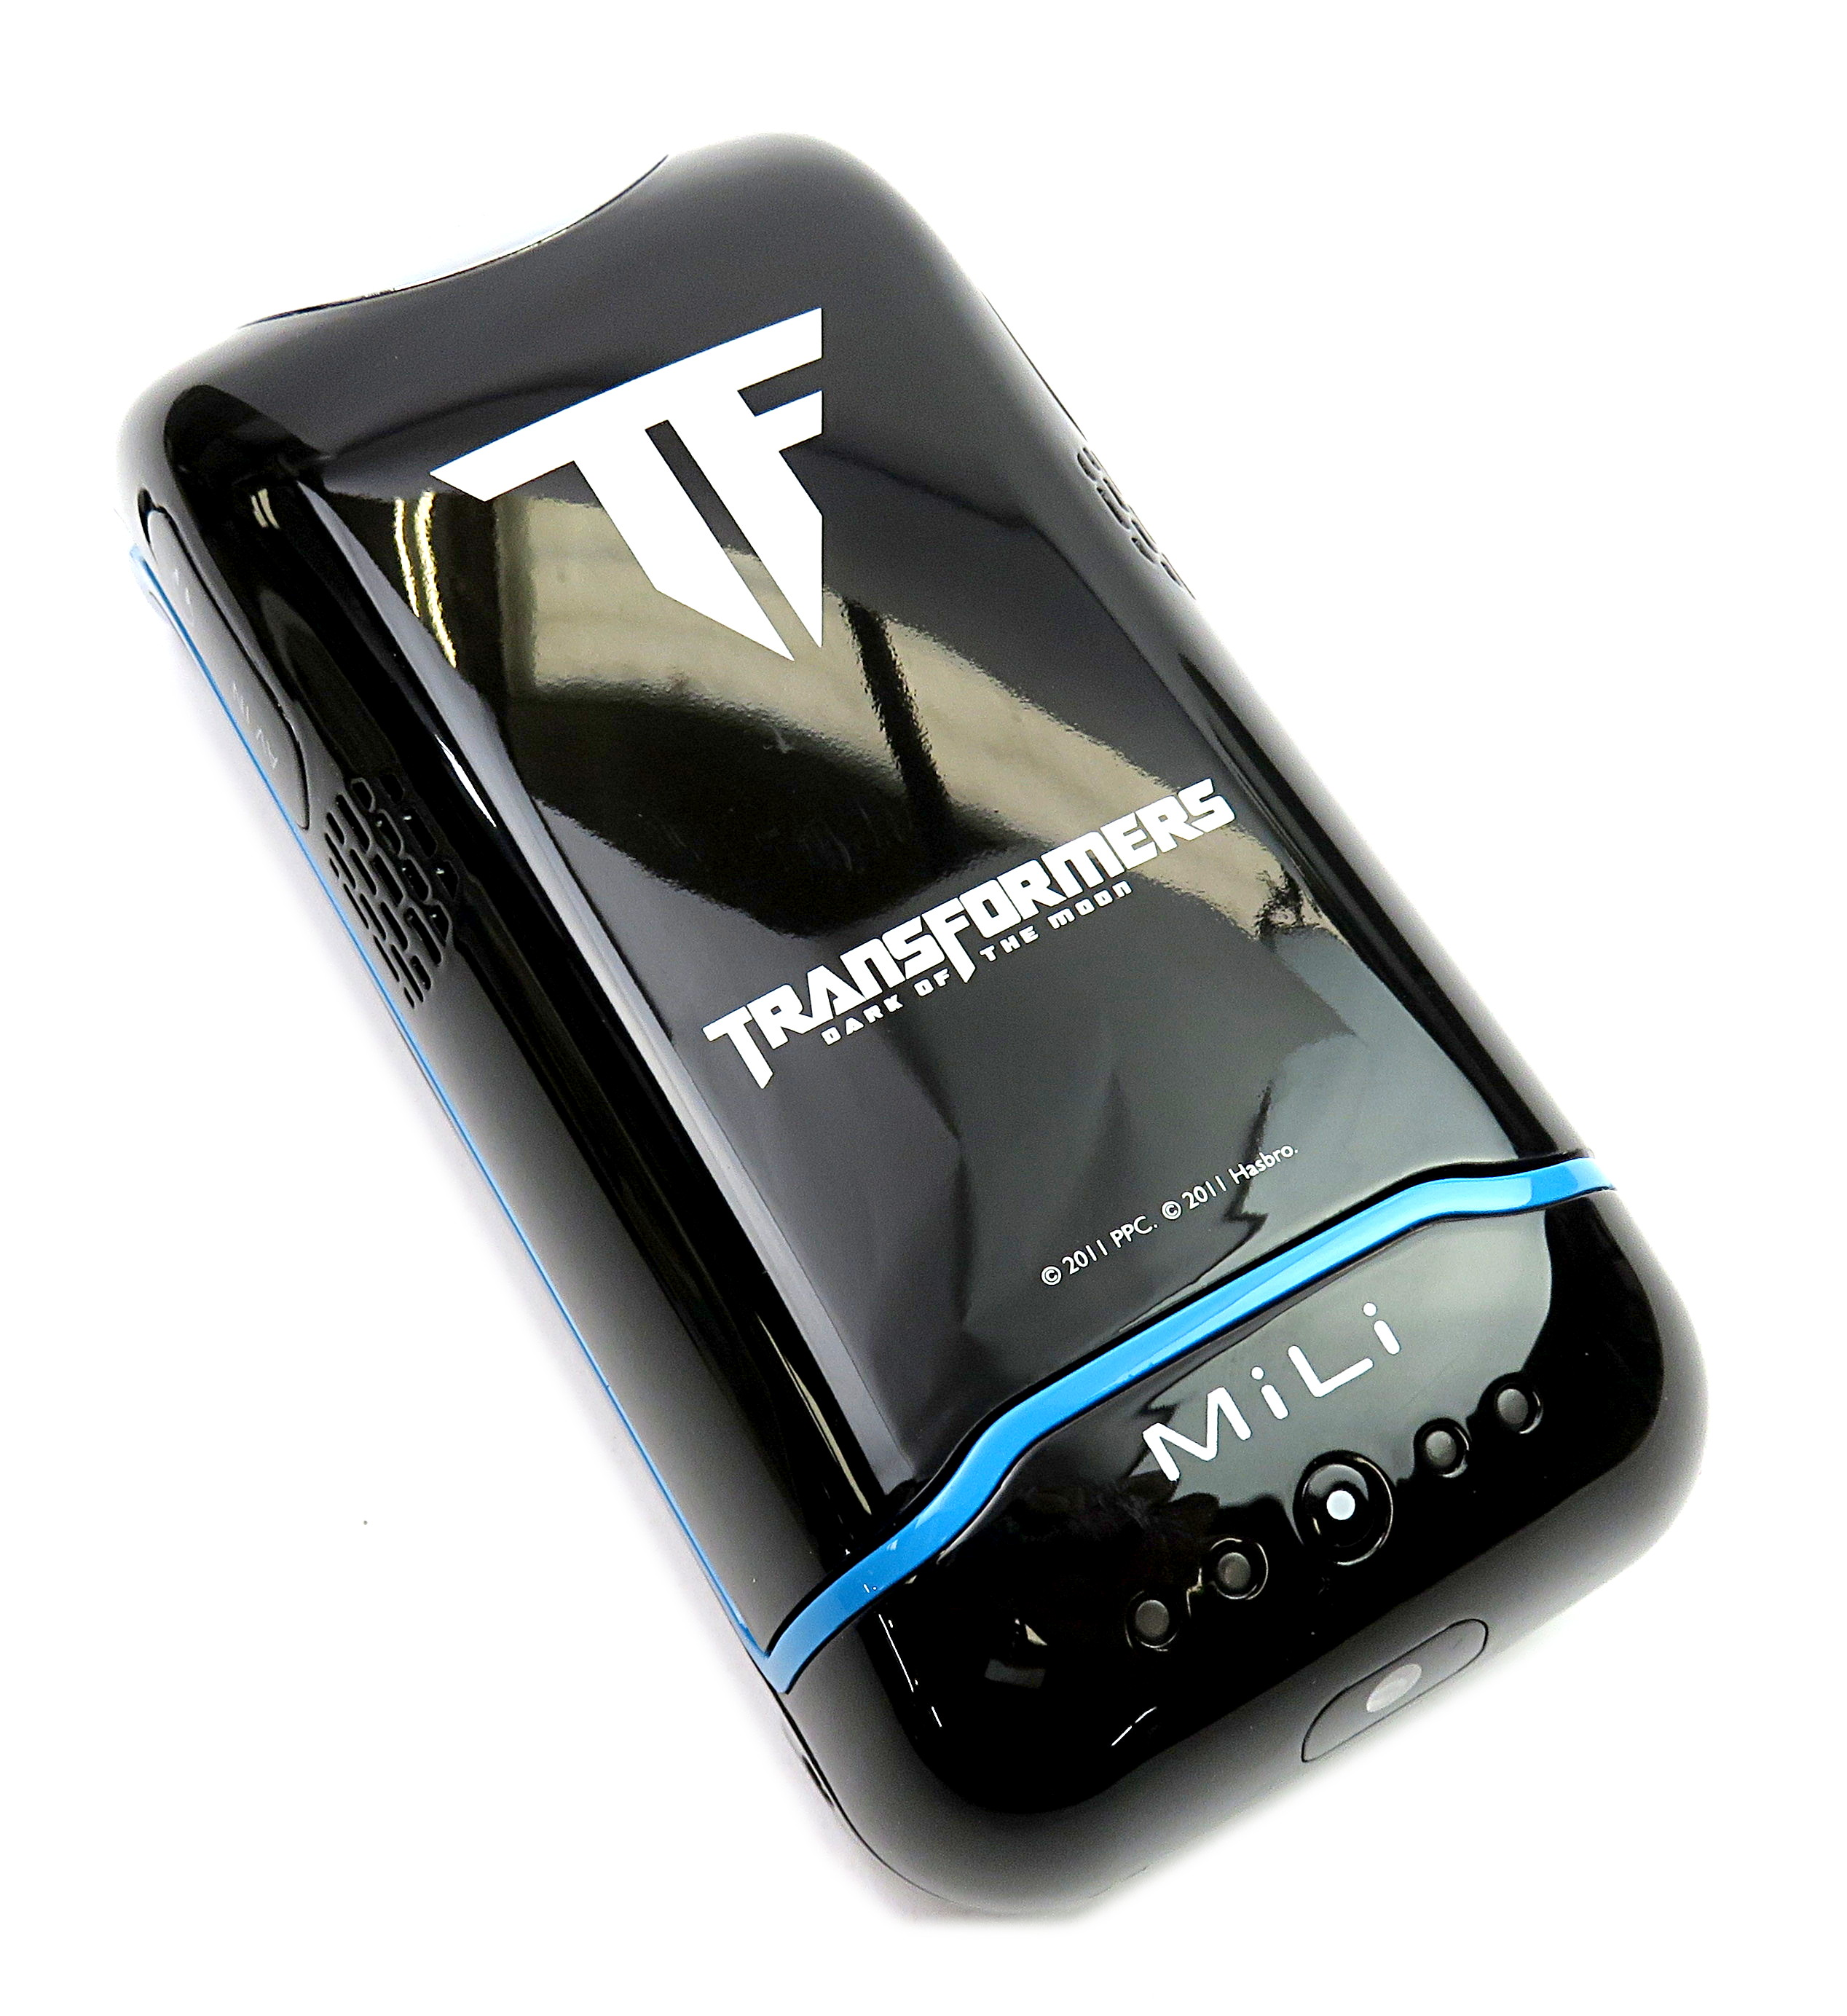 """""""Transformers: Dark of The Moon"""" Promotional Edition MiLi Power Pico Projector"""